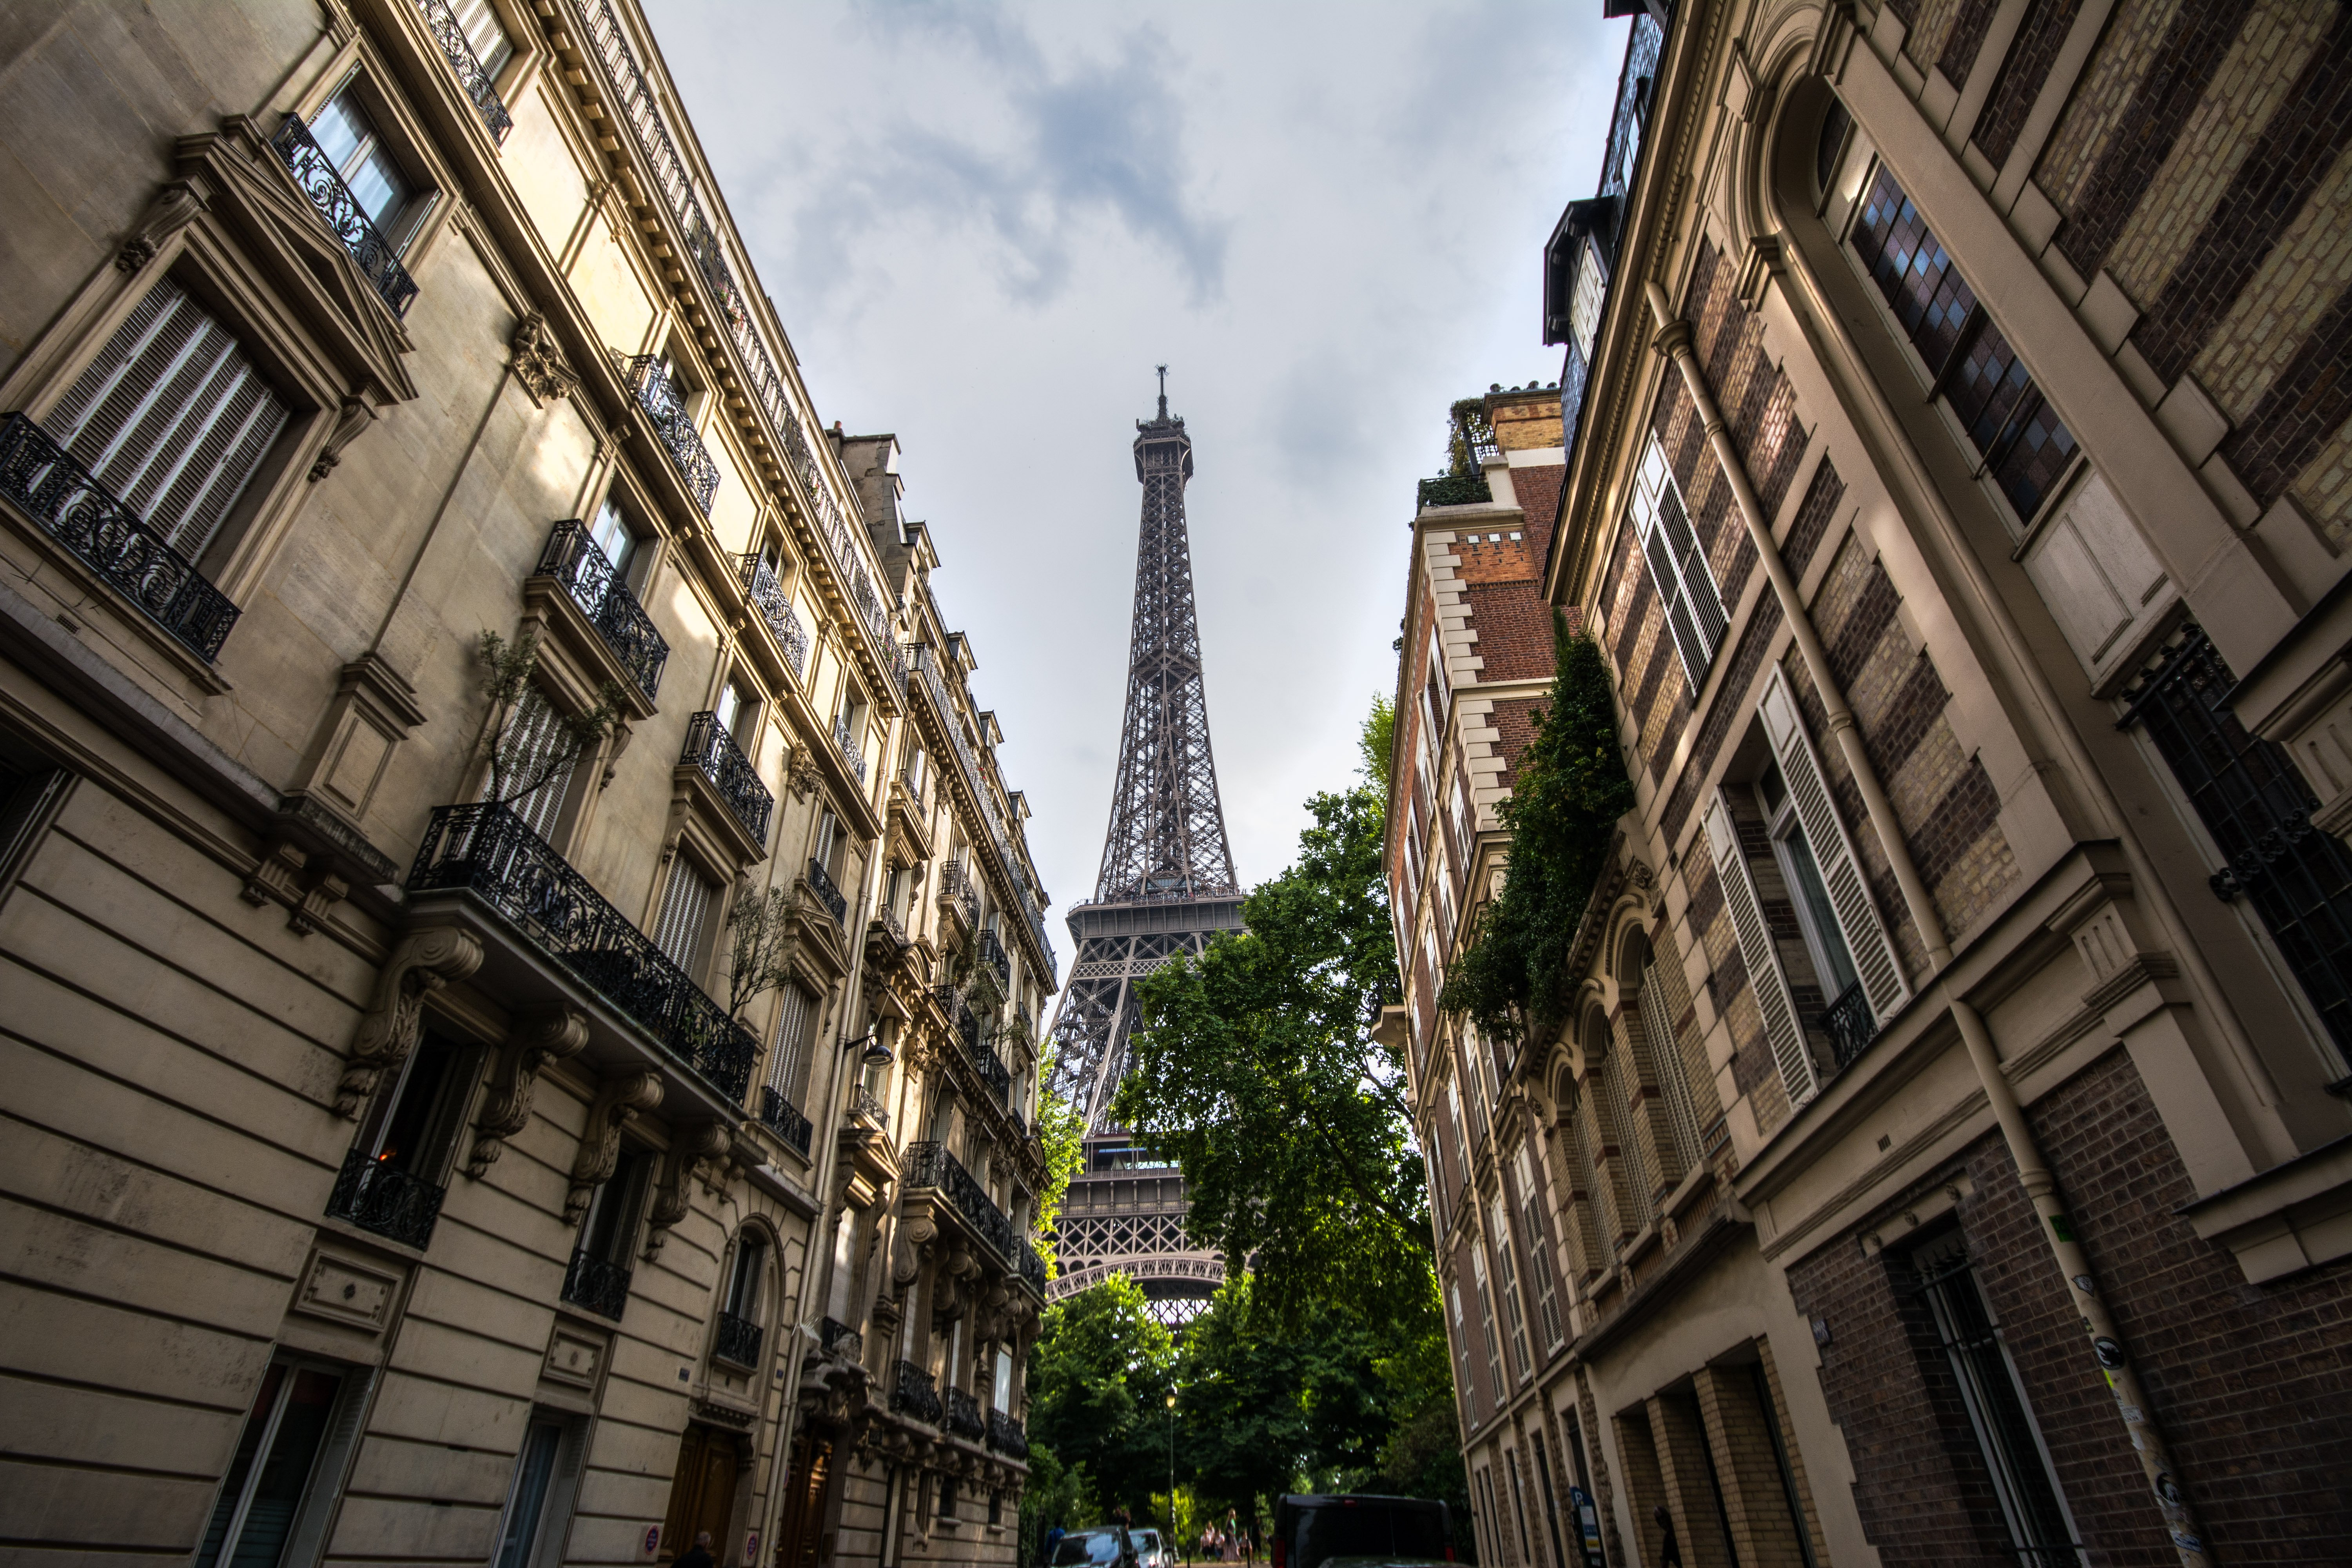 Eiffel tower view from a street of Rue de l'Universite by Travel Anubhav